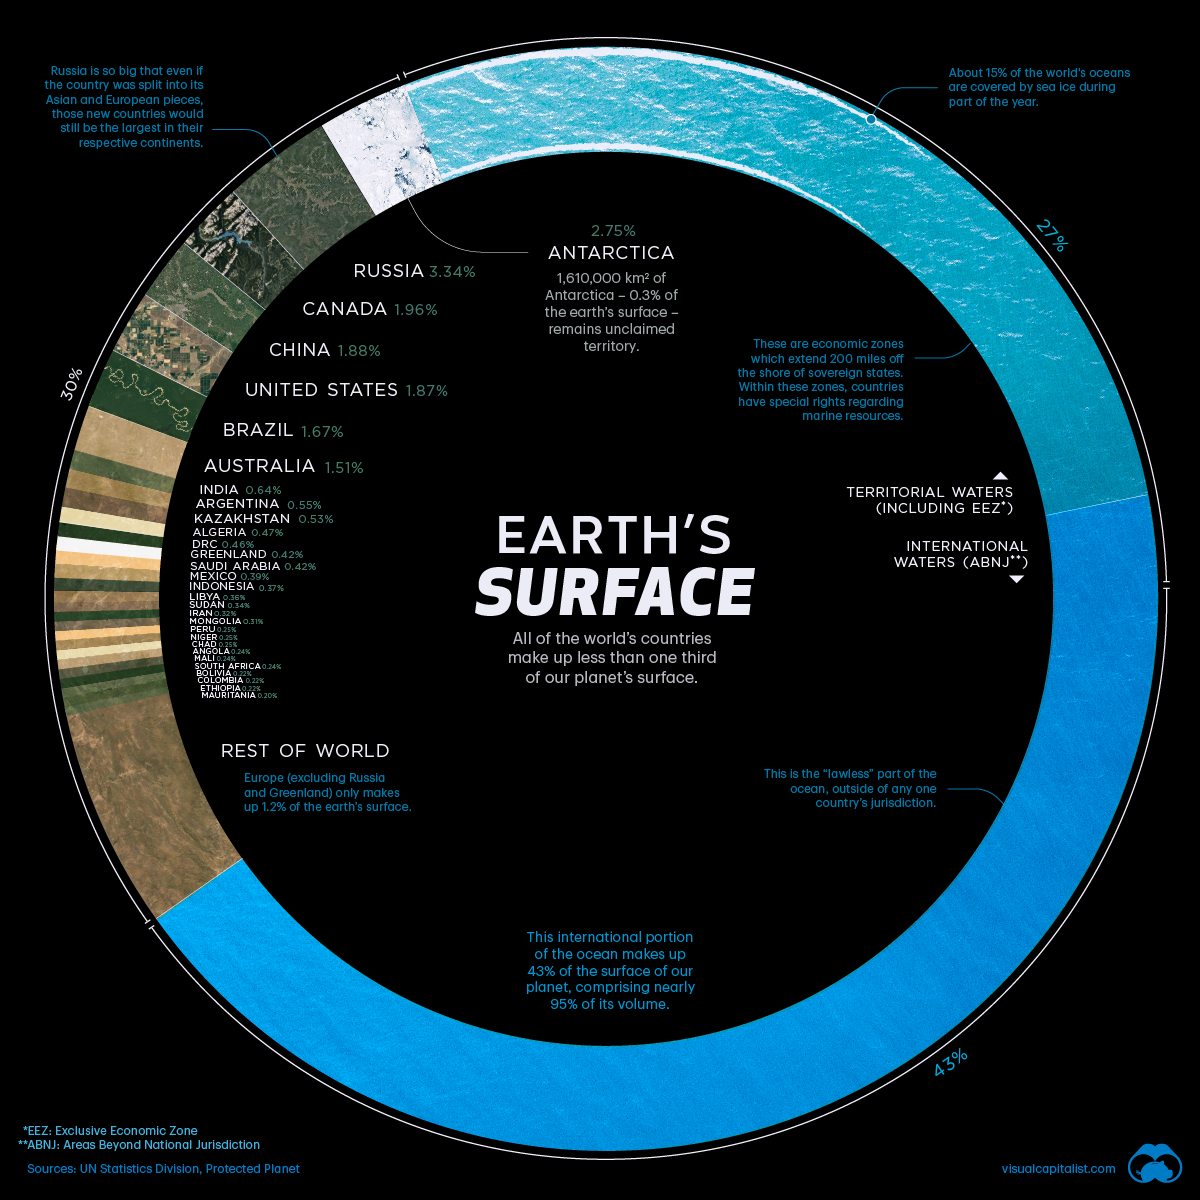 Visualizing Countries and our Oceans by Share of Earth's Surface